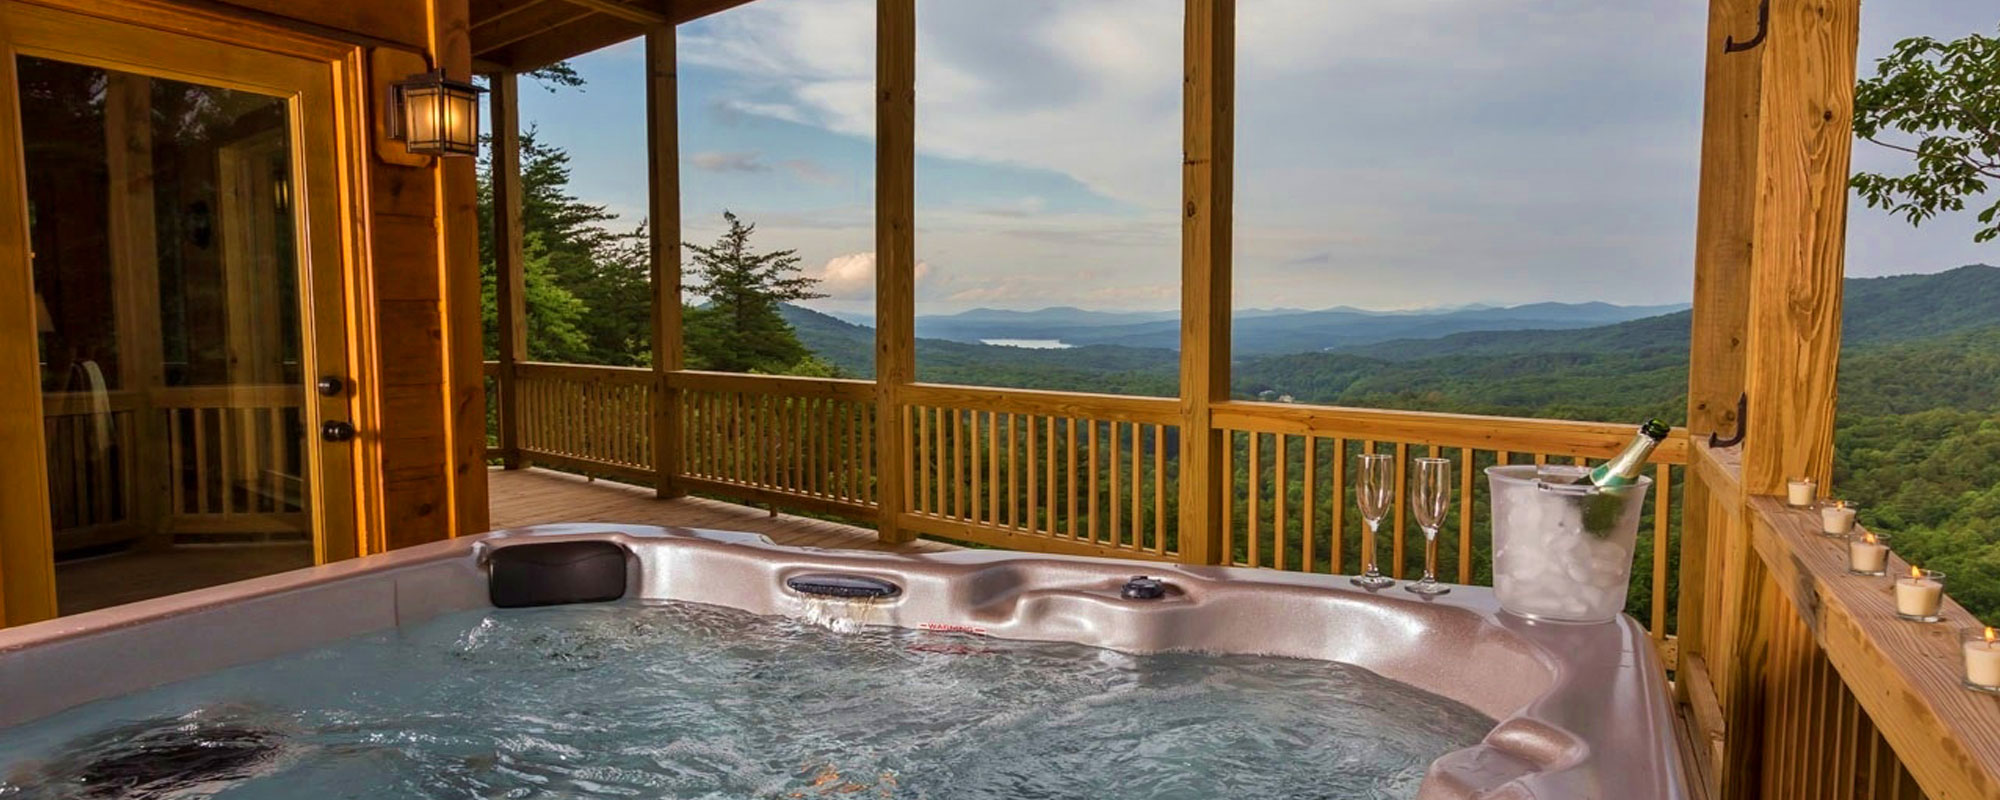 pet rent friendly hot springs for north on img cabins carolina trail little nc appalachian